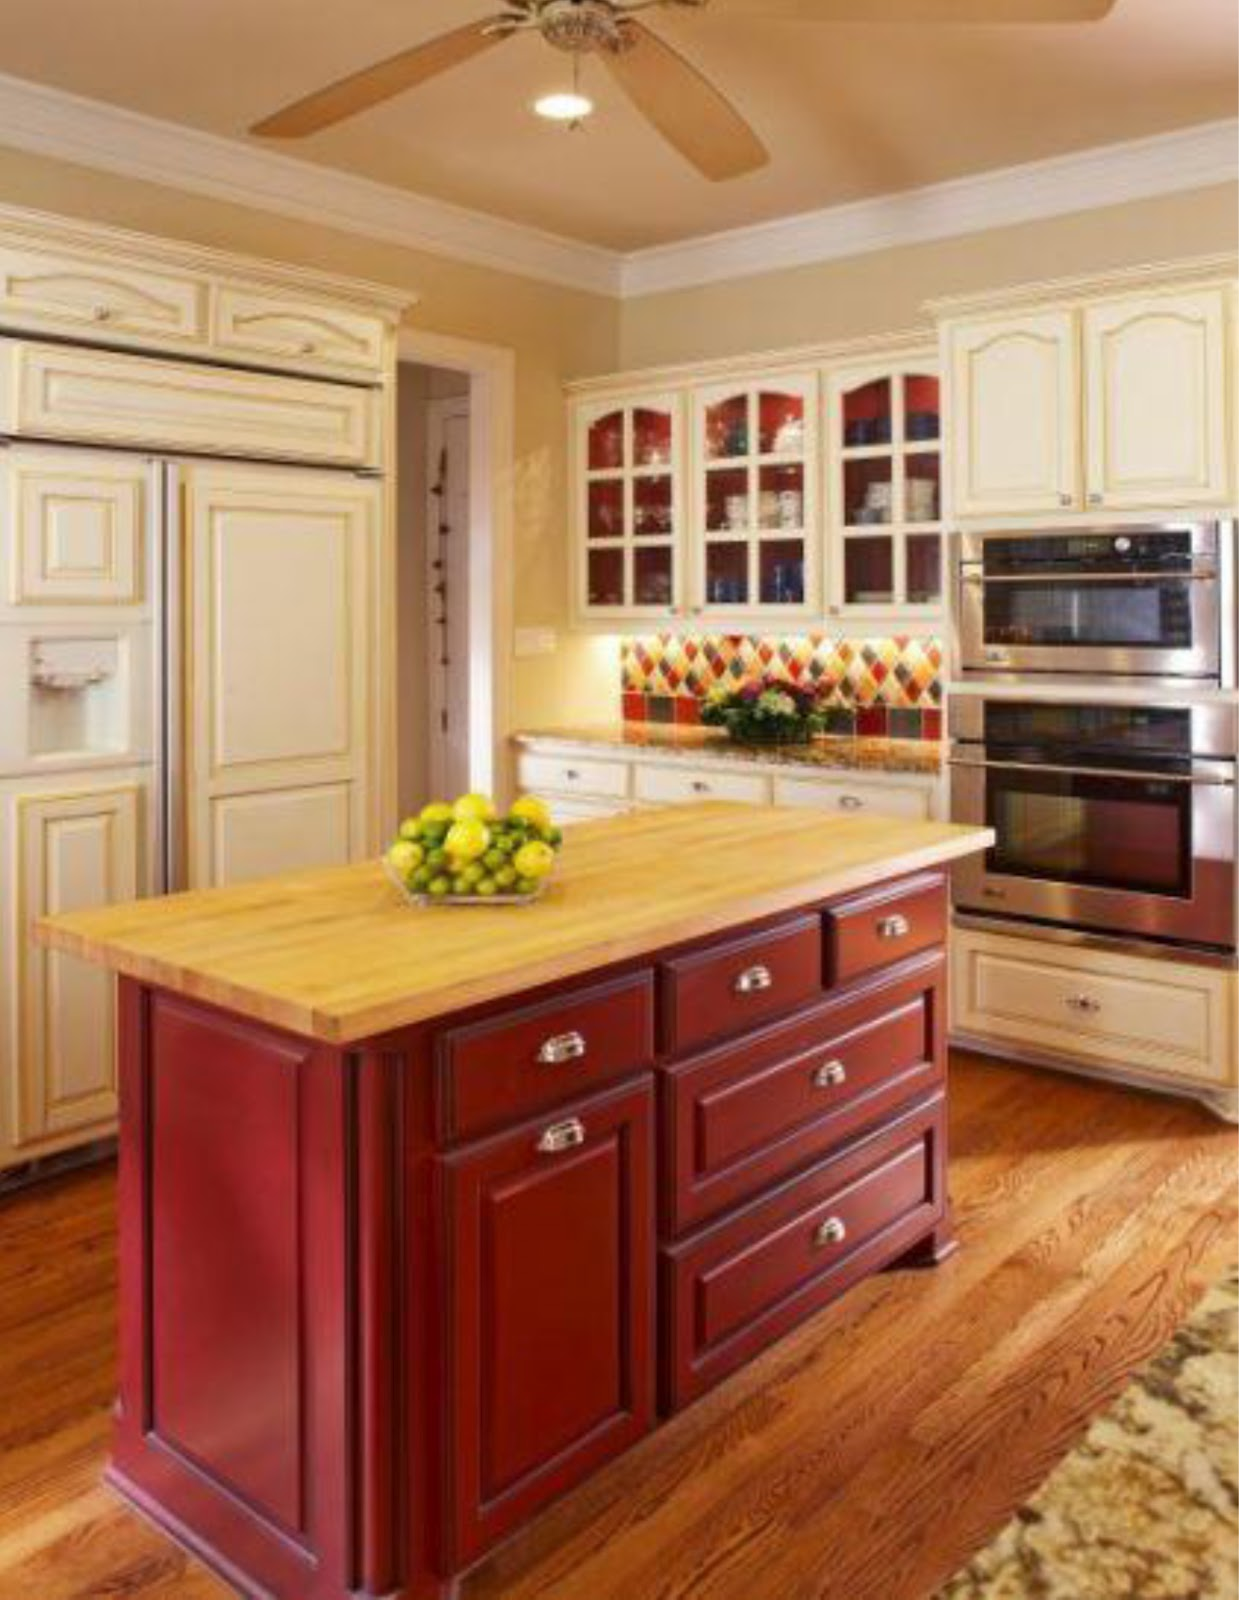 Simplifying remodeling june 2012 for Kitchen island cabinets